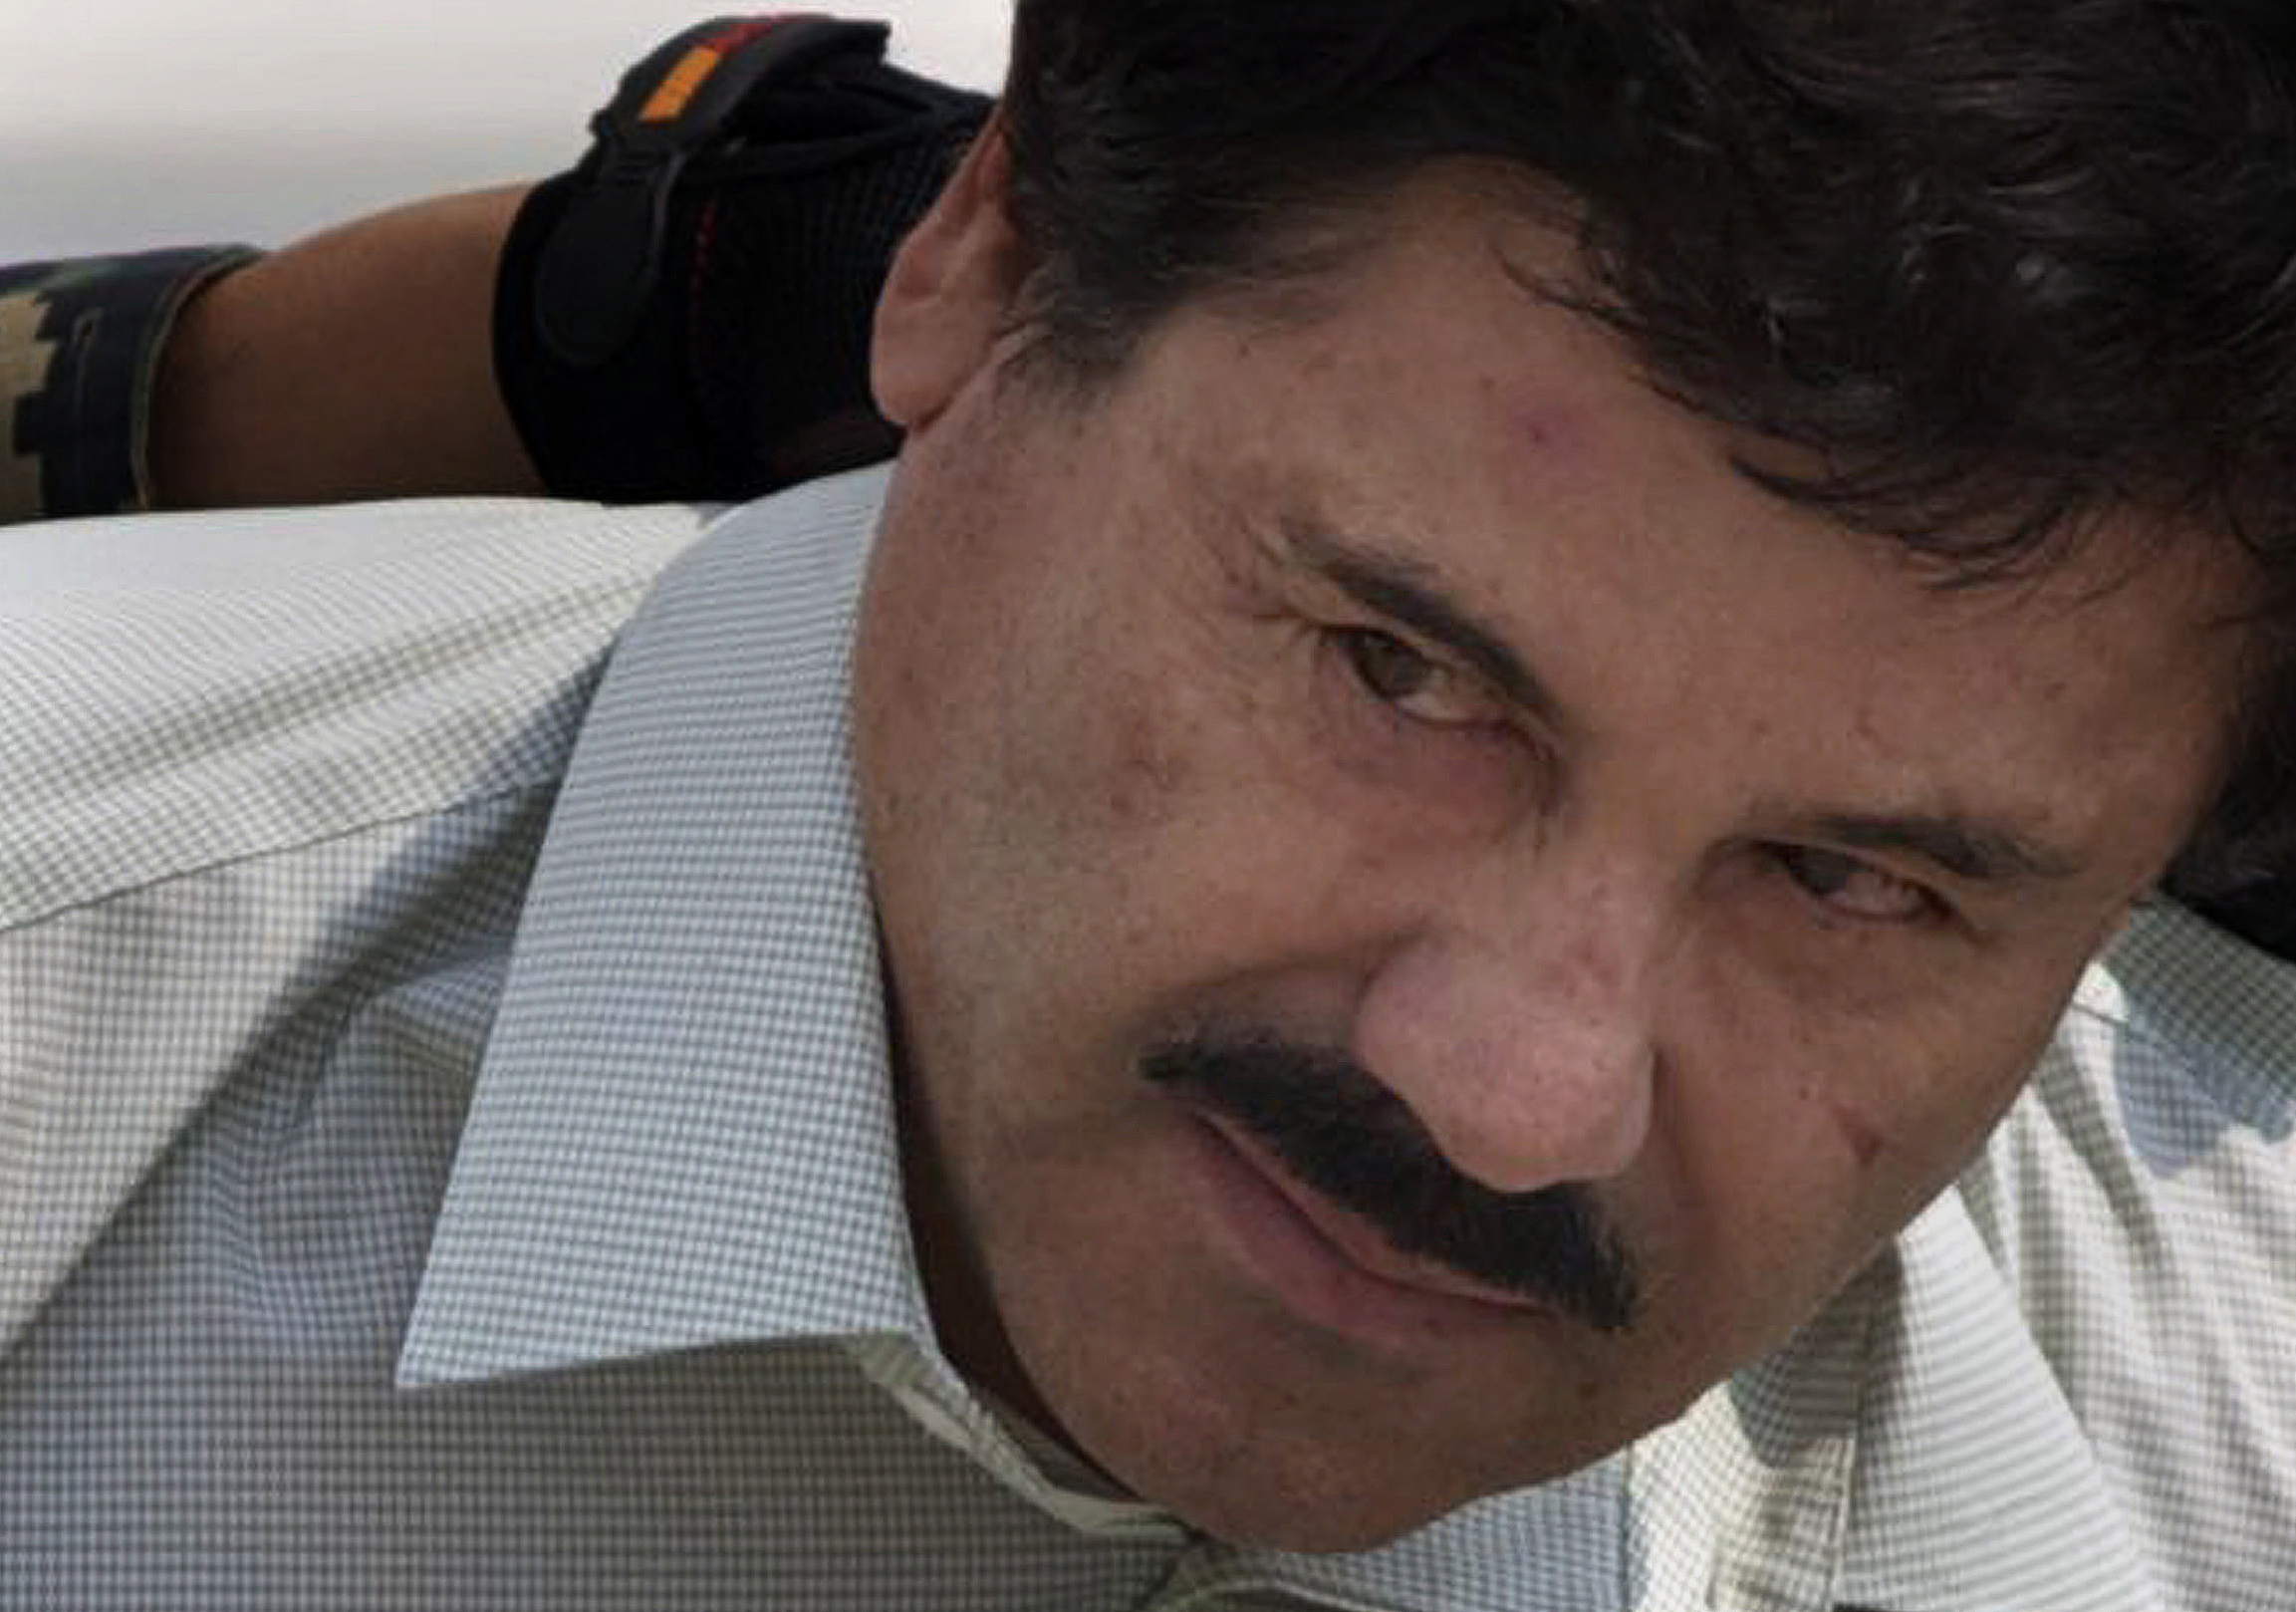 El Chapo, Mexican drug kingpin, sentenced to life in prison